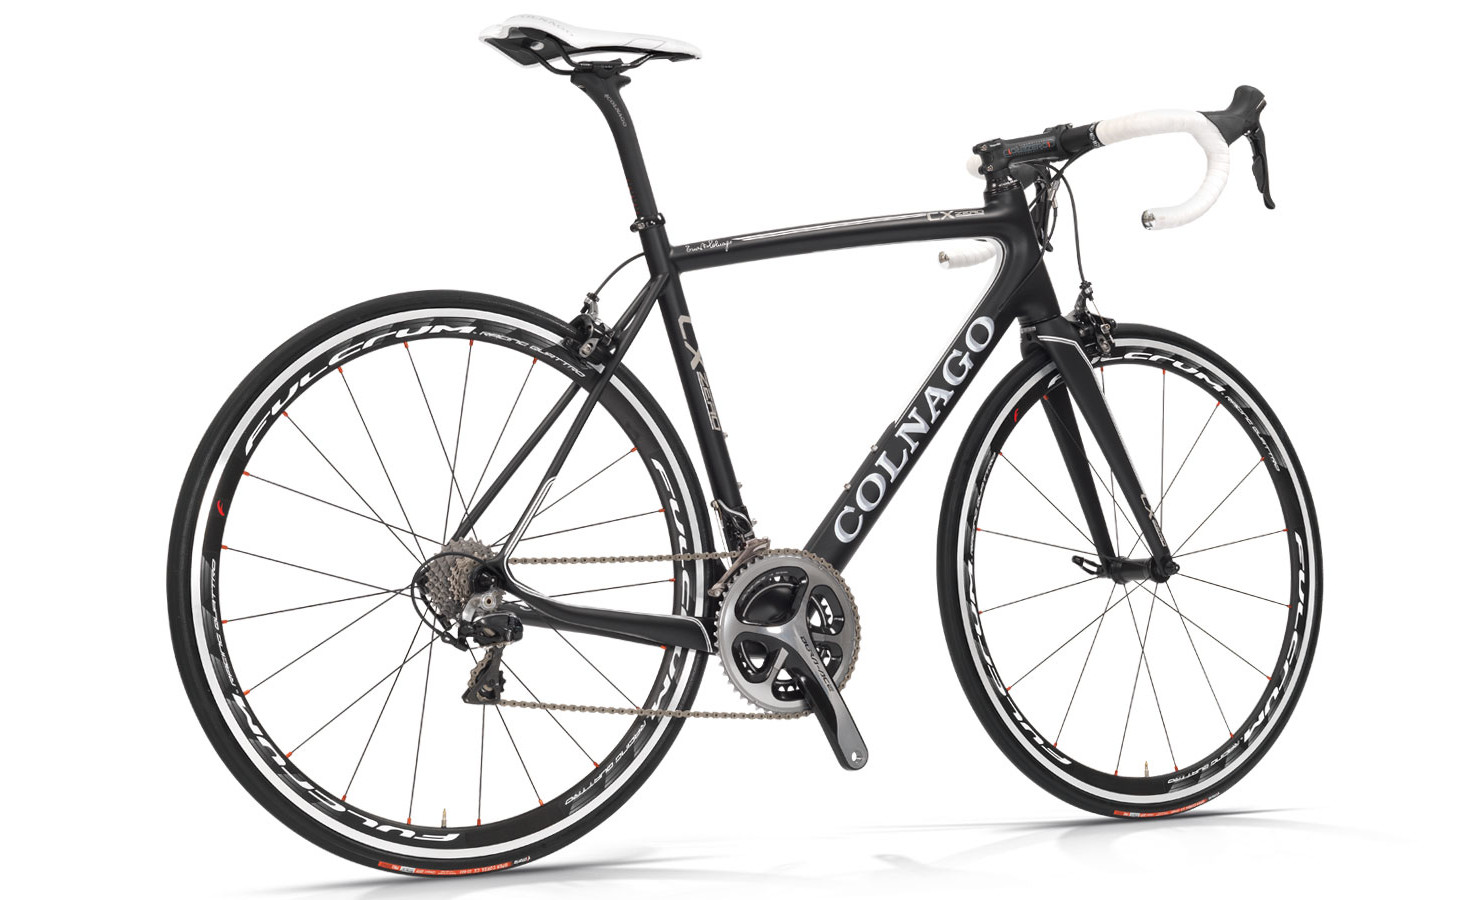 Colnago CX Zero Shimano Dura Ace bike for guided road bike tours and rentals in Victoria BC Canada